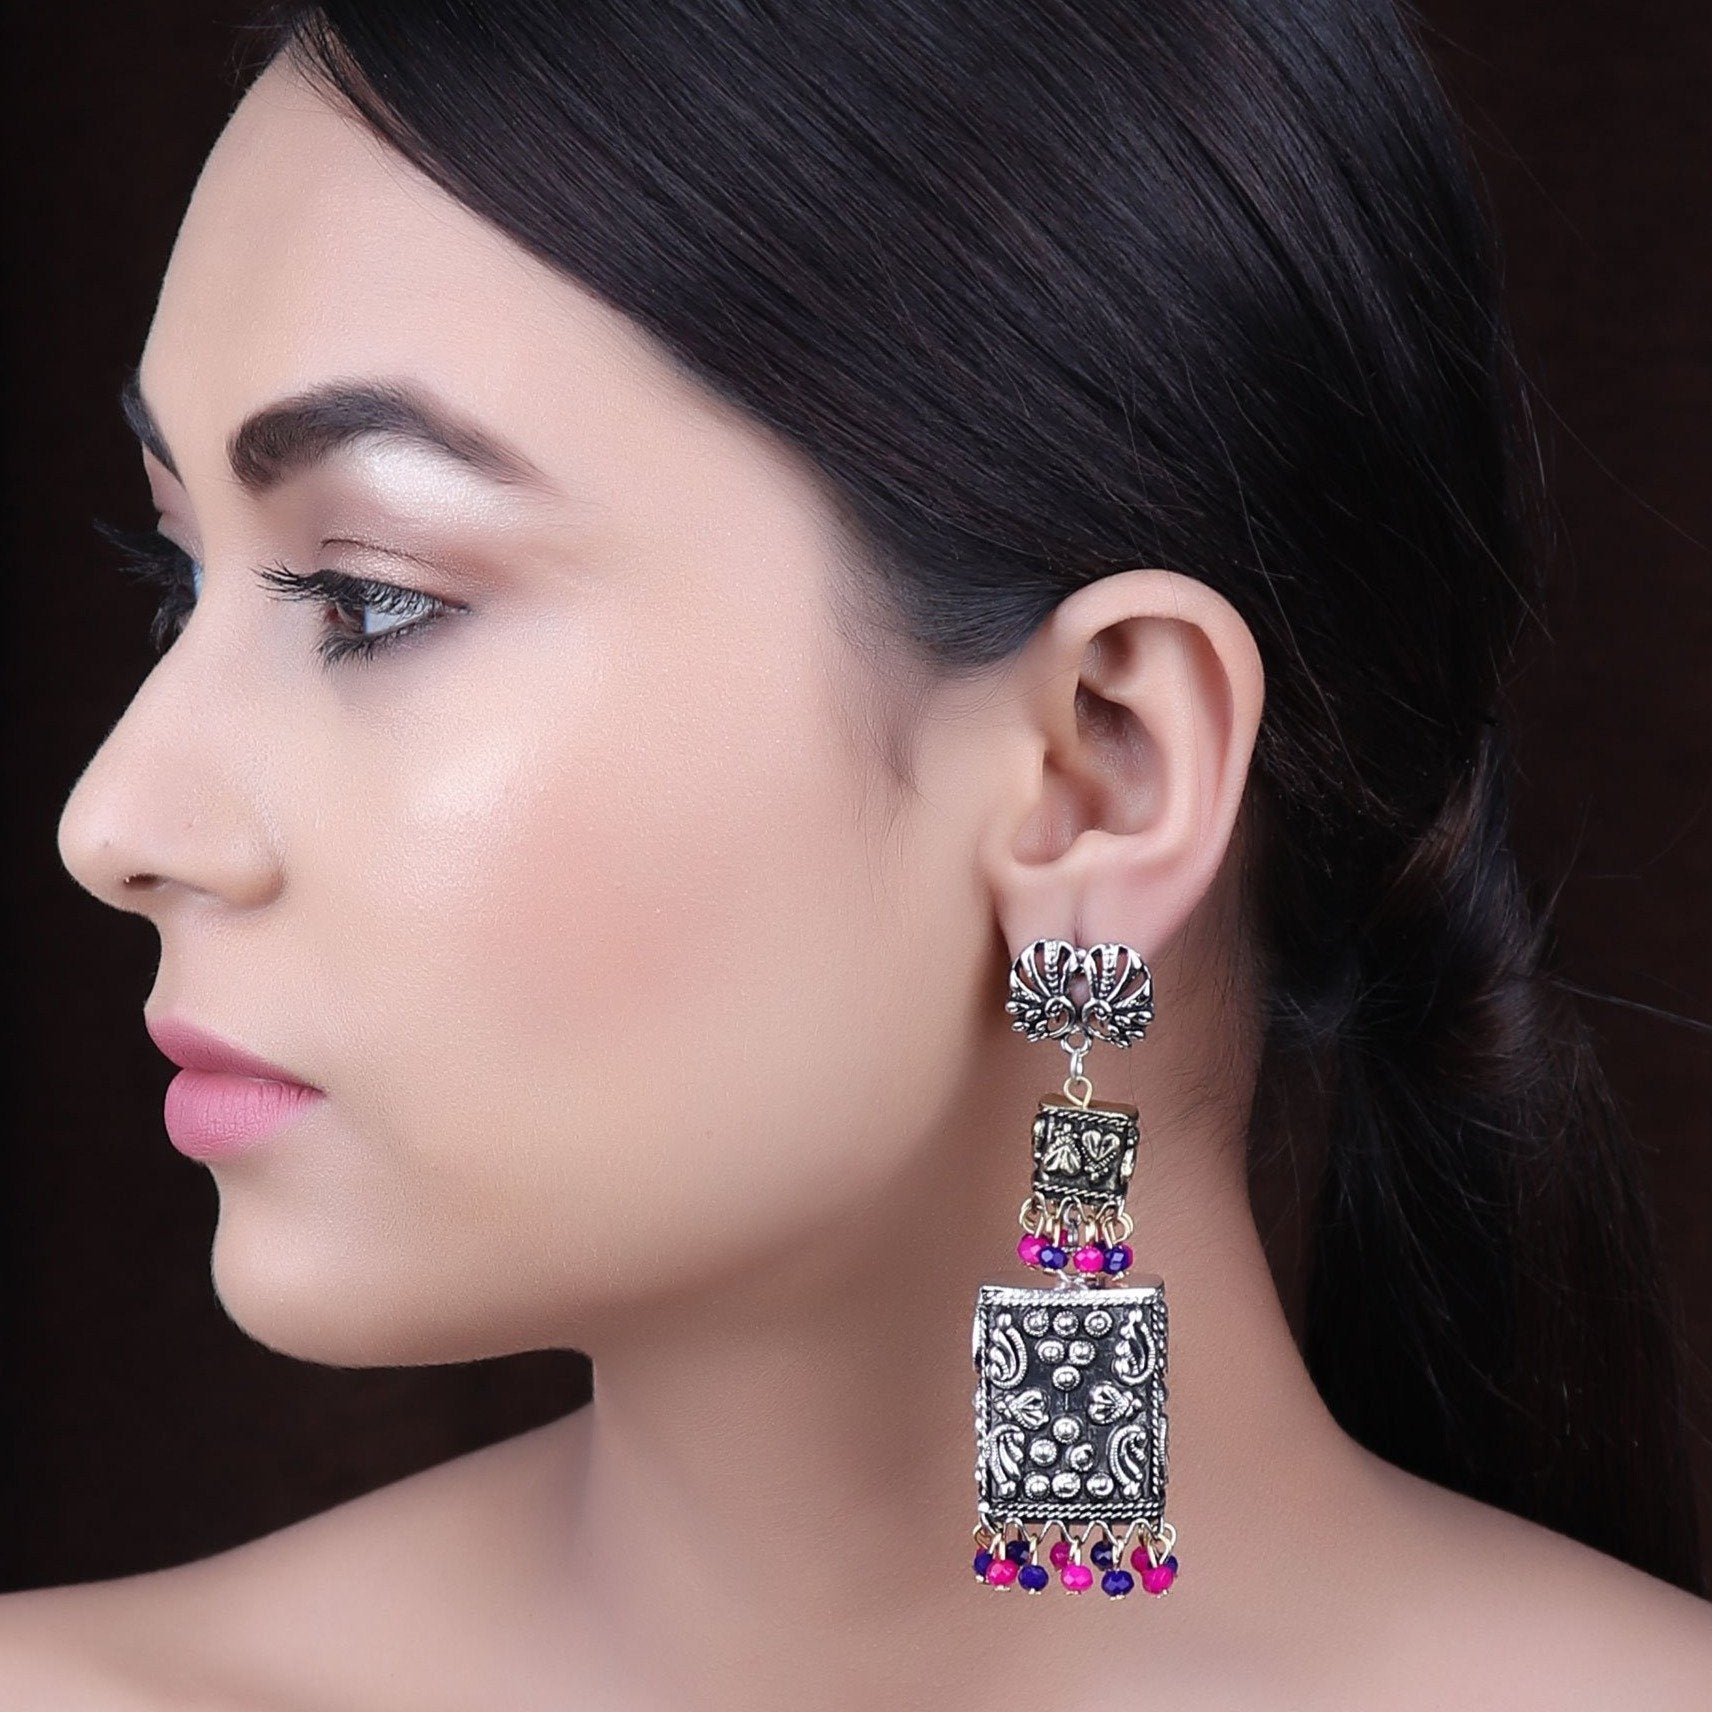 Earrings,The spirited Peacock Pair Earring in Pink & Blue Beads - Cippele Multi Store